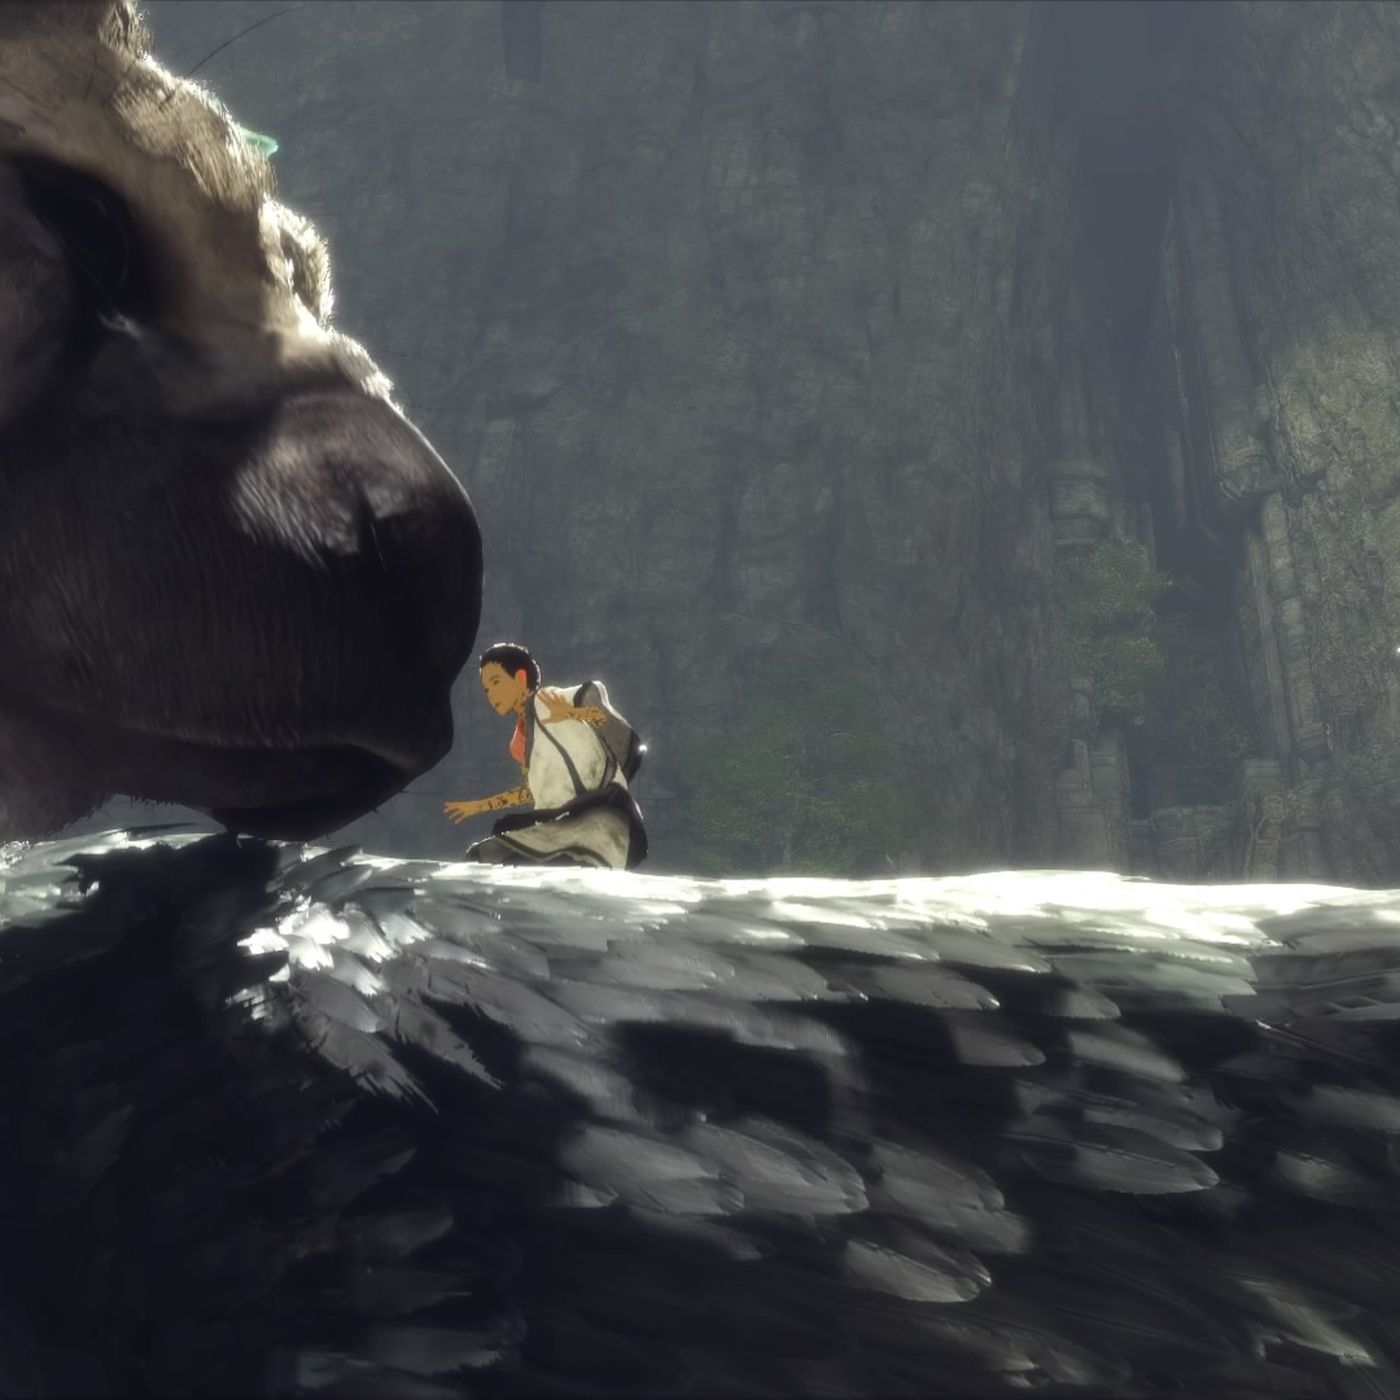 The Last Guardian contains a beautiful lesson about animals